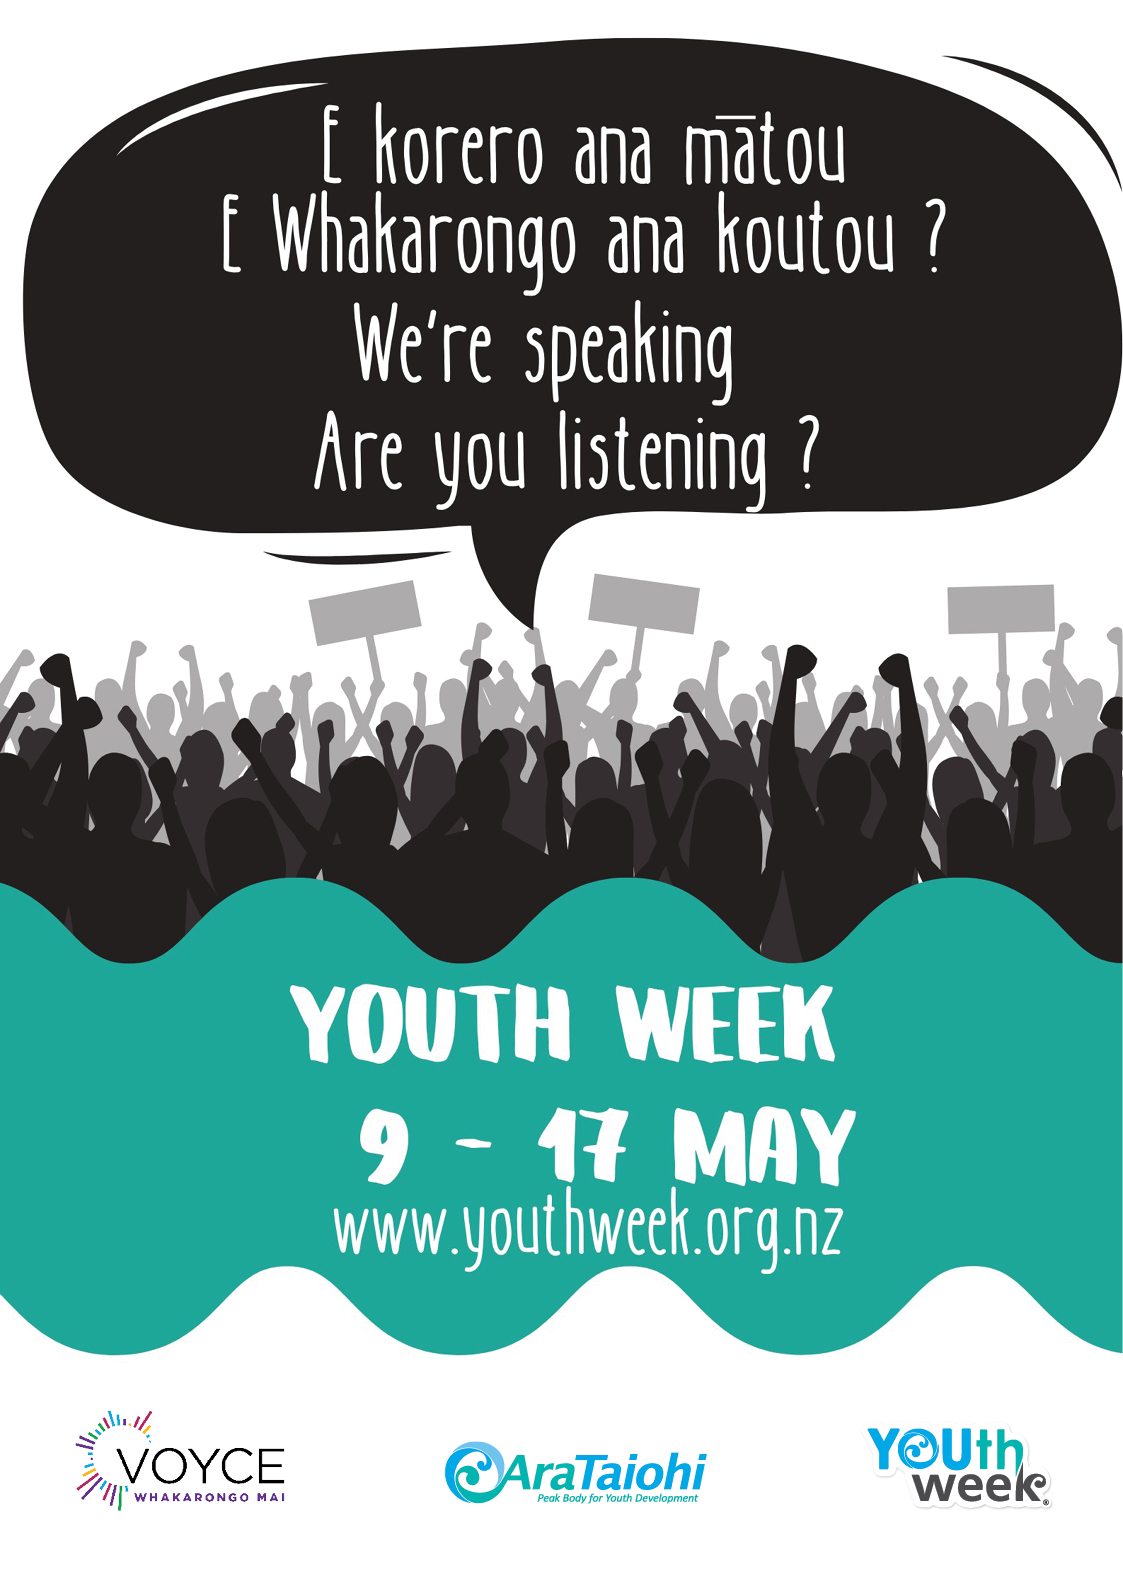 """Silhouettes of group or crowd with hands in the air and holding grayed out placards. the theme is in a speech bubble as if the crowd are shouting out: """"E korero ana mātou. E whakarongo ana koutou? We're speaking. Are you listening?"""""""